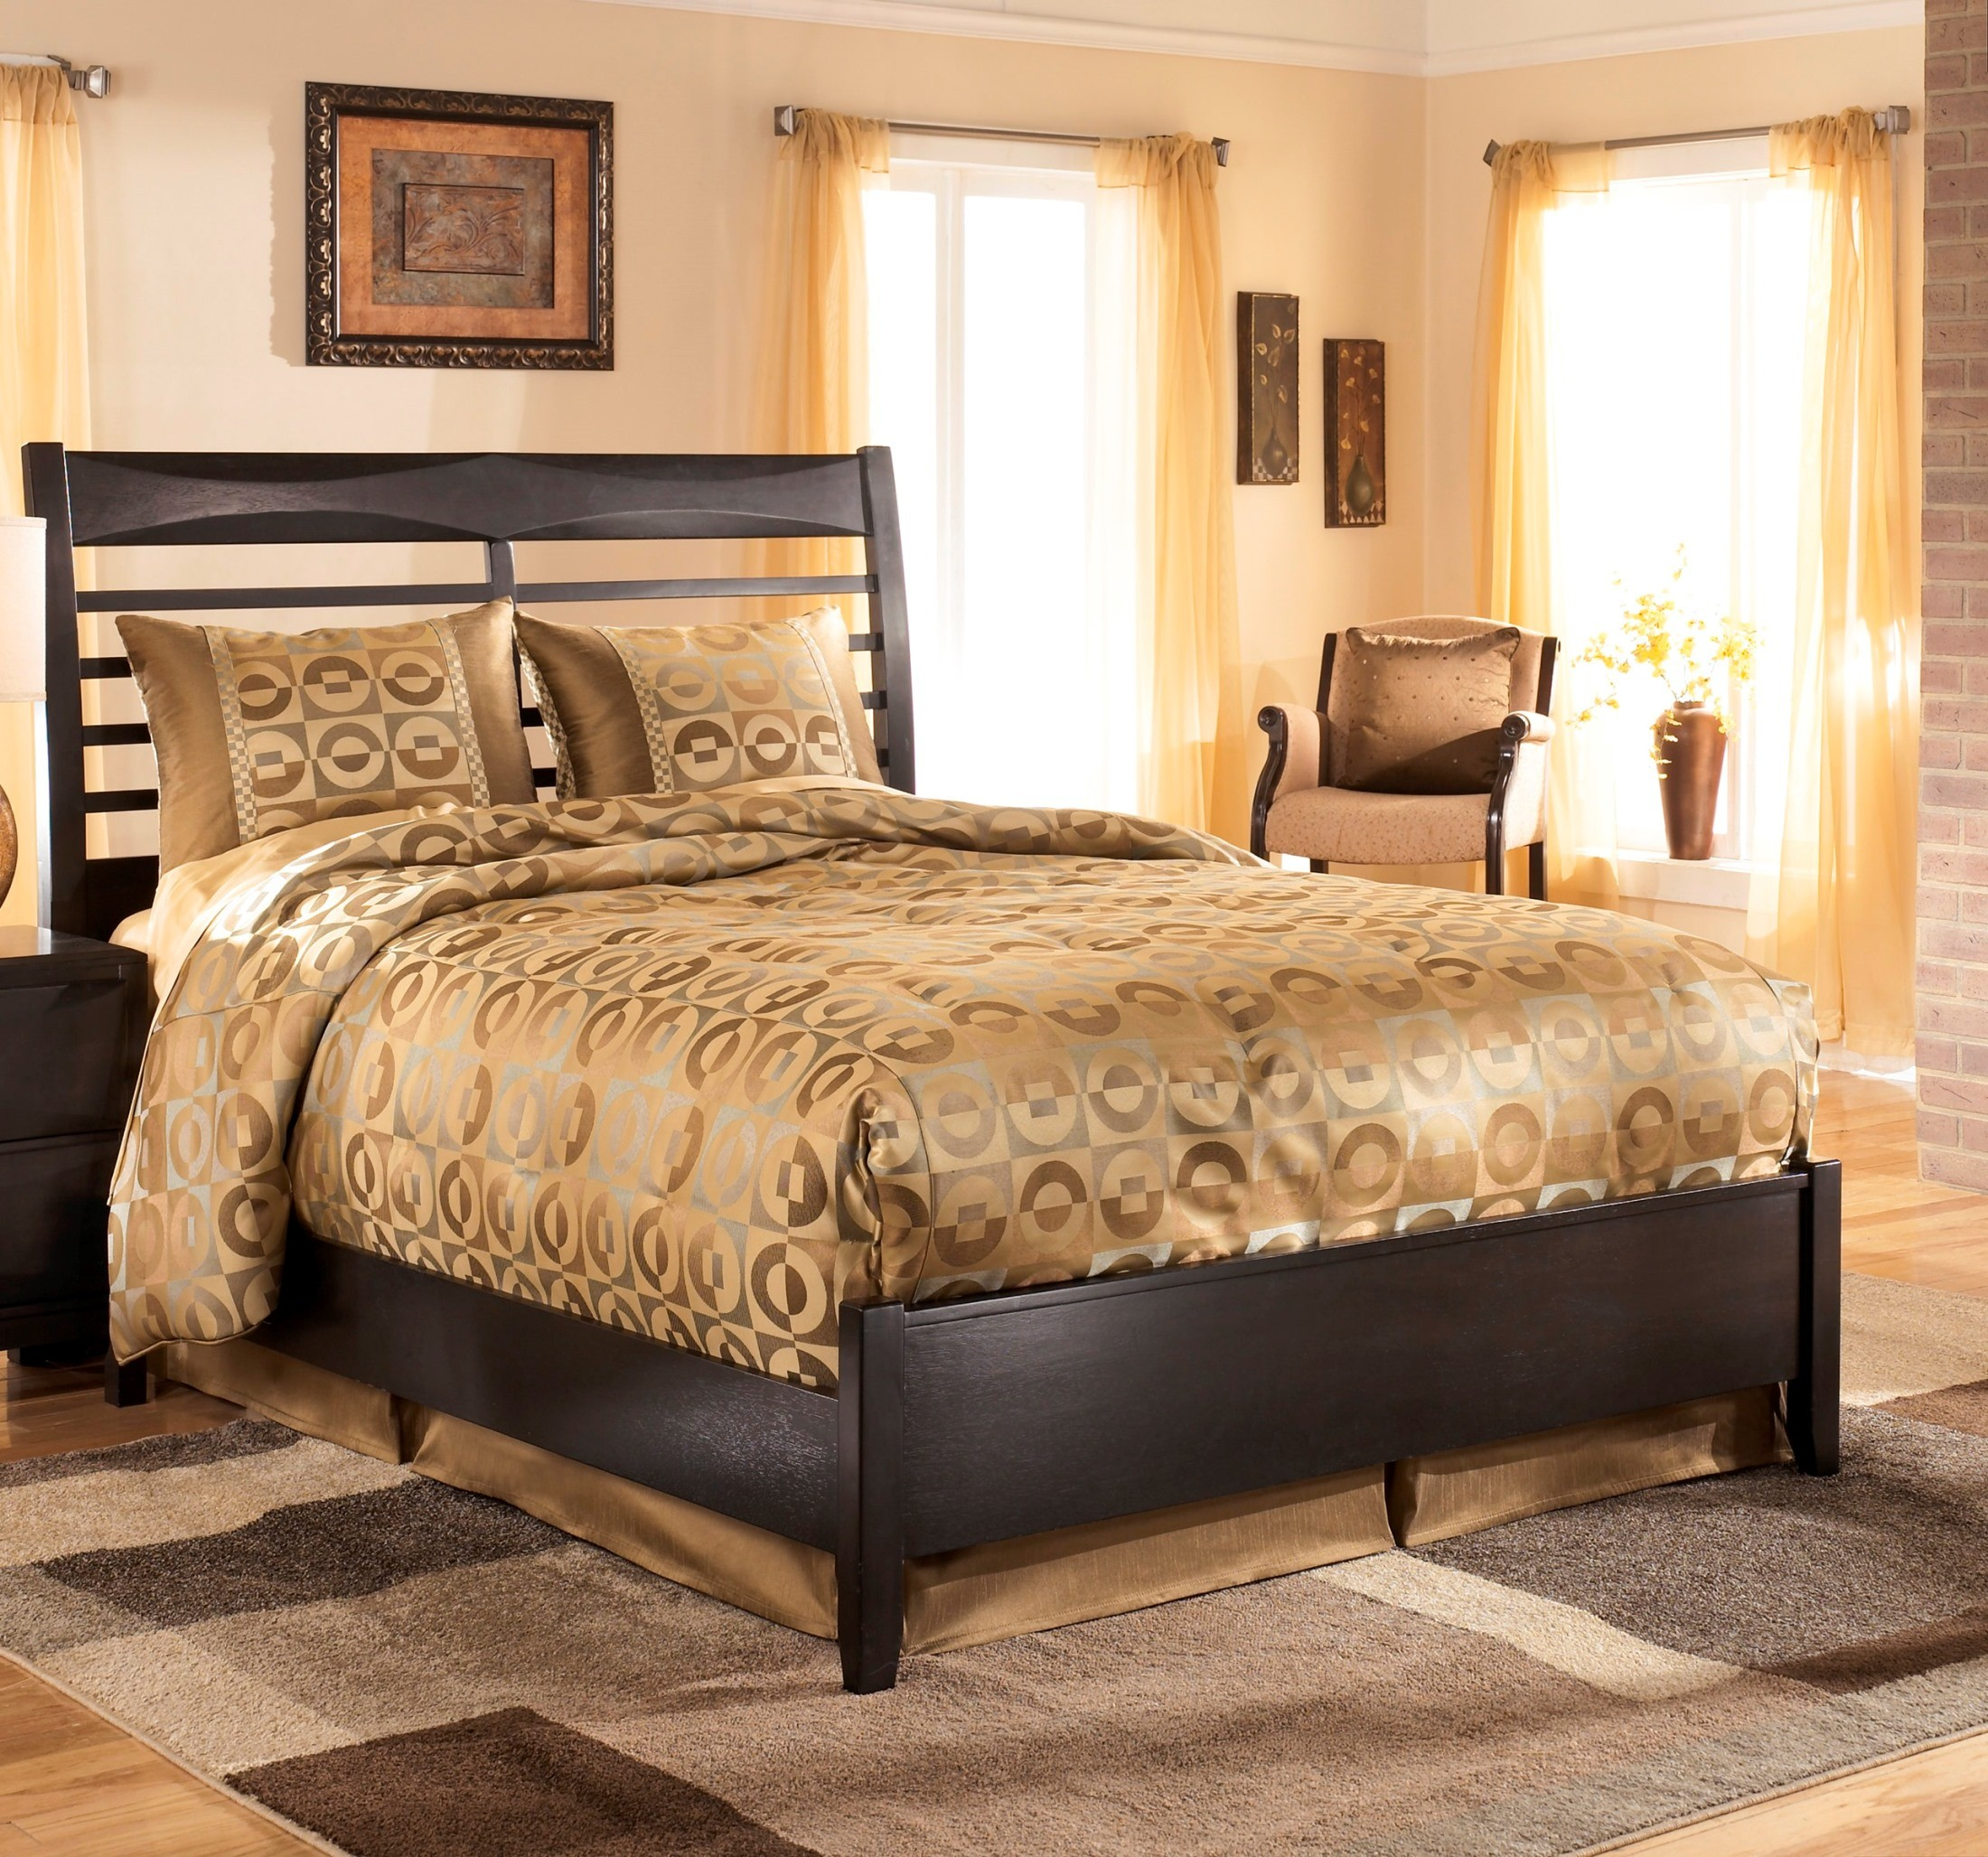 Kira Queen Panel Bed From Ashley B473 54 57 96 Coleman